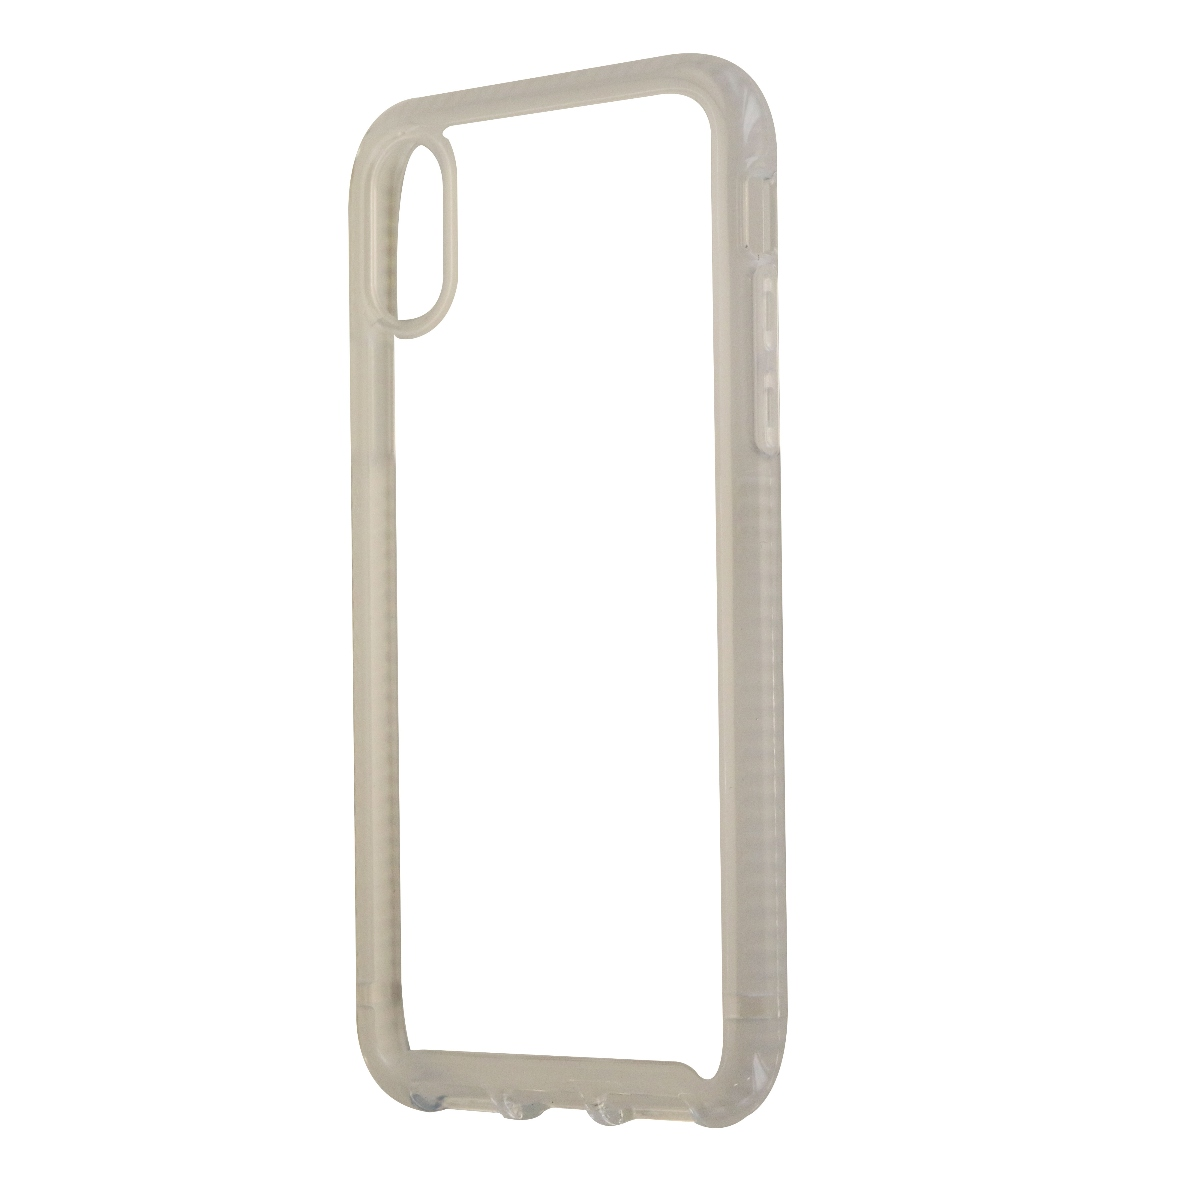 Tech21 Pure Clear Series Hybrid Hard Case Cover for Apple iPhone Xs / X - Clear